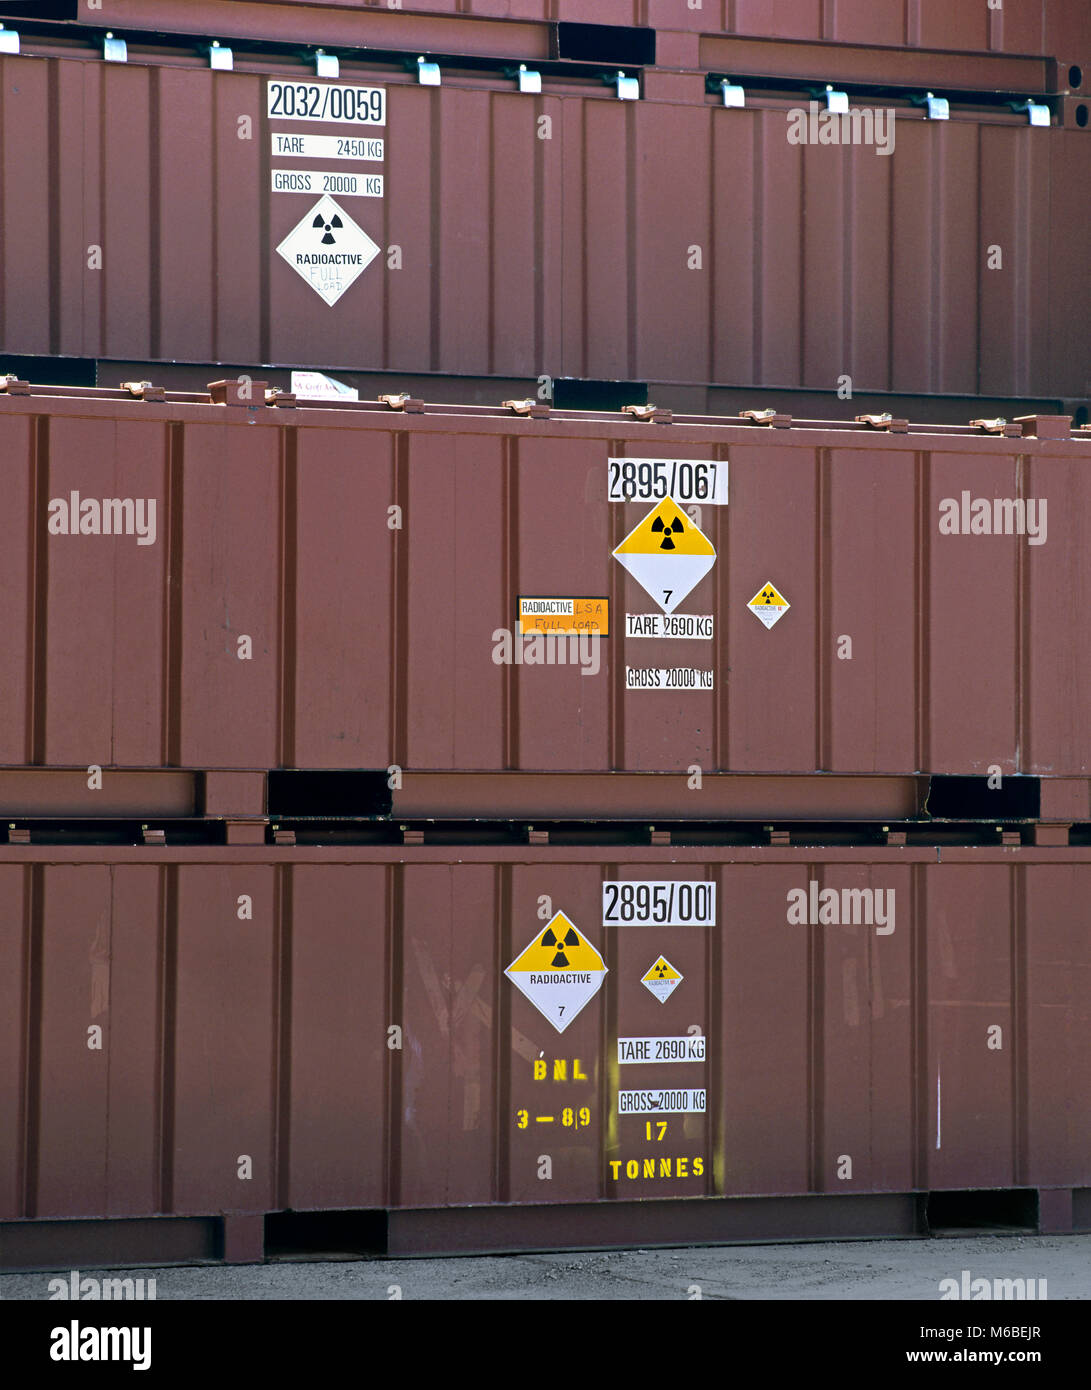 Containers of low-level radioactive waste stacked in Vault 8 at the Low Level Waste Repository at Drigg, near Sellafield, - Stock Image